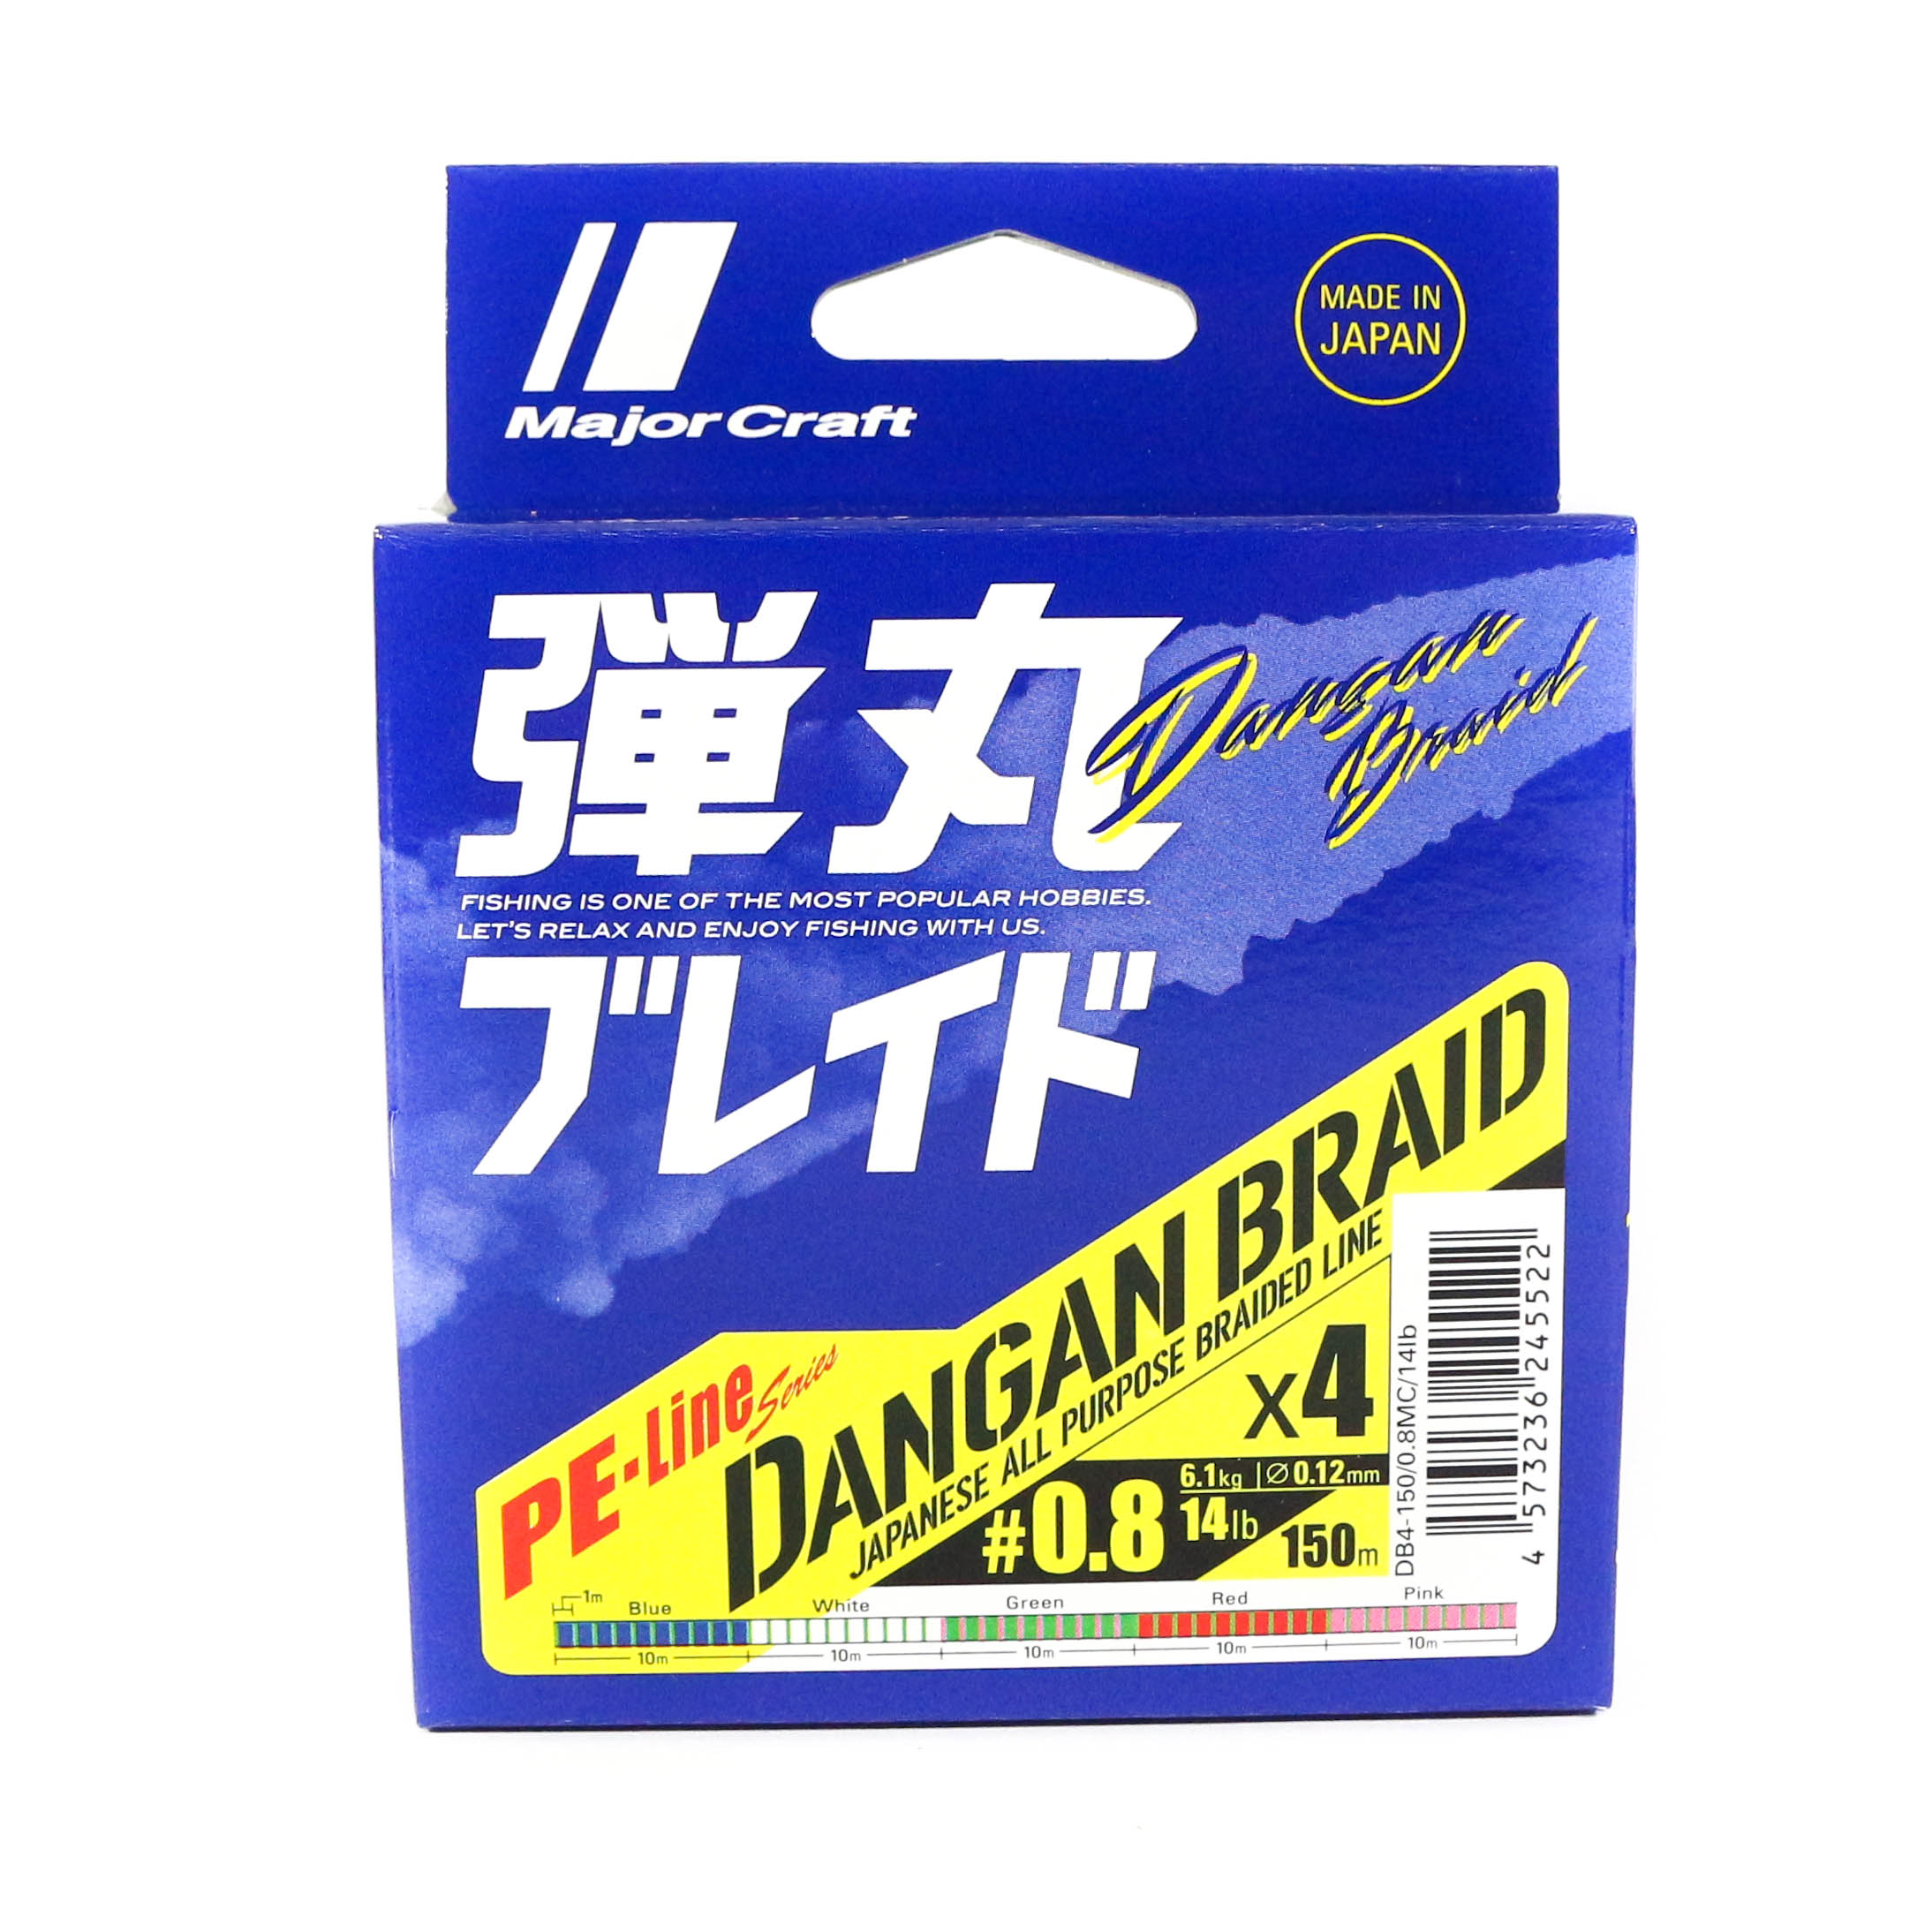 Major Craft Dangan Braided Line X4 150m P.E 0.8 Multi DB4-150/0.8MC/14lb (5522)